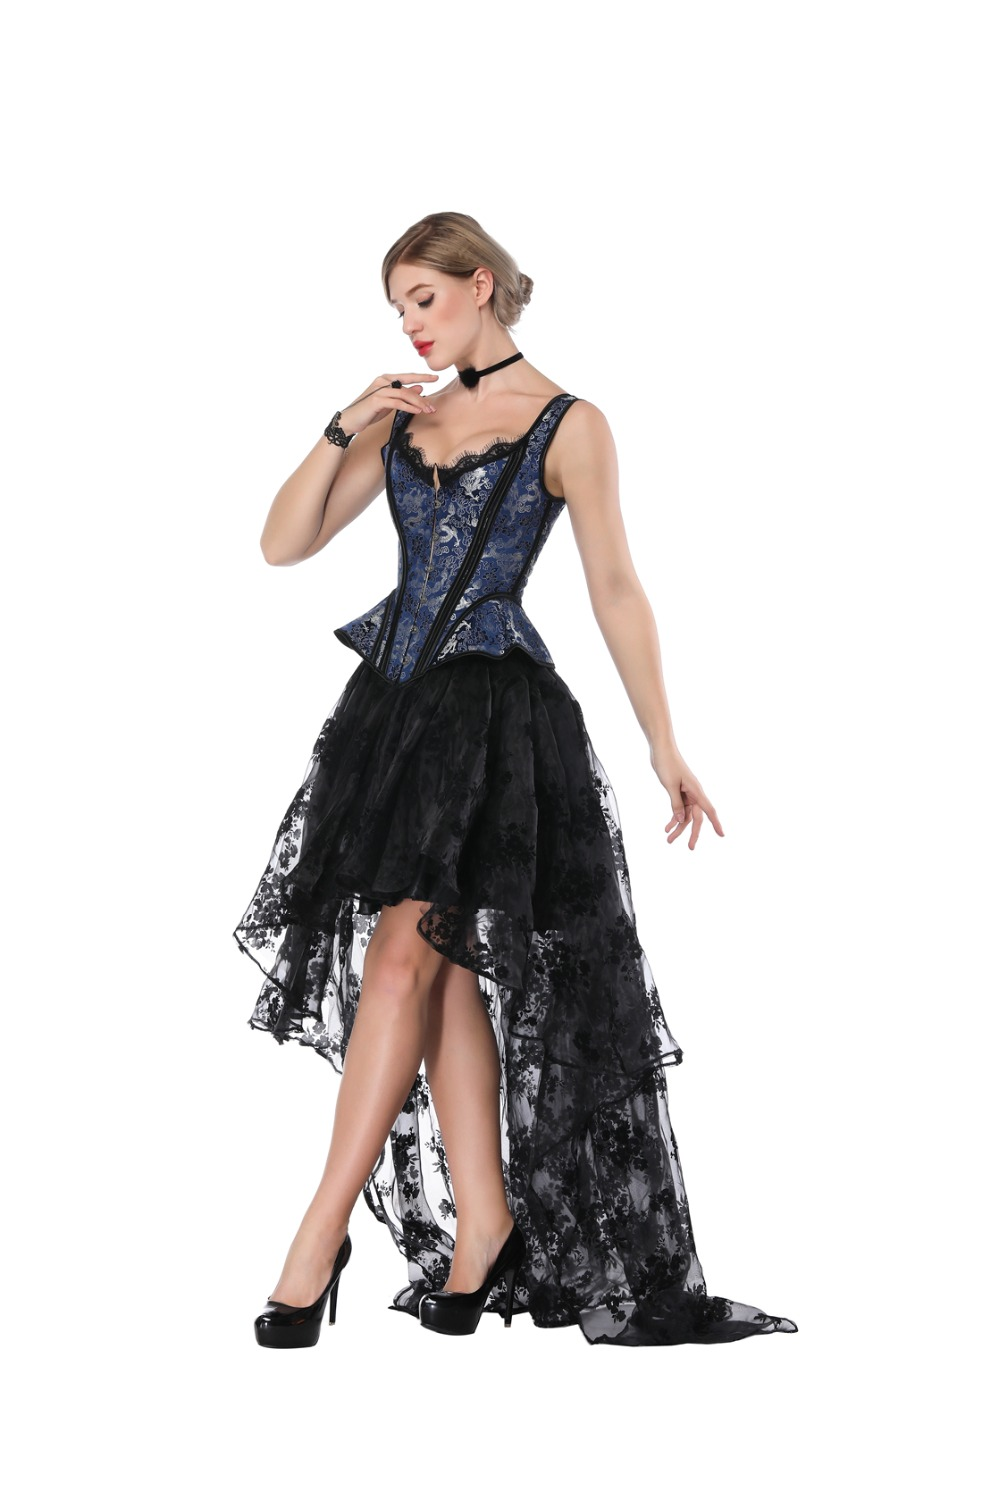 eff683d0e45 Victorian Ruffle Lace Steampunk Corset Dress Plus Size Corsets And Bustiers  Prom Sexy Dresses Gothic Clothing Burlesque Costumes